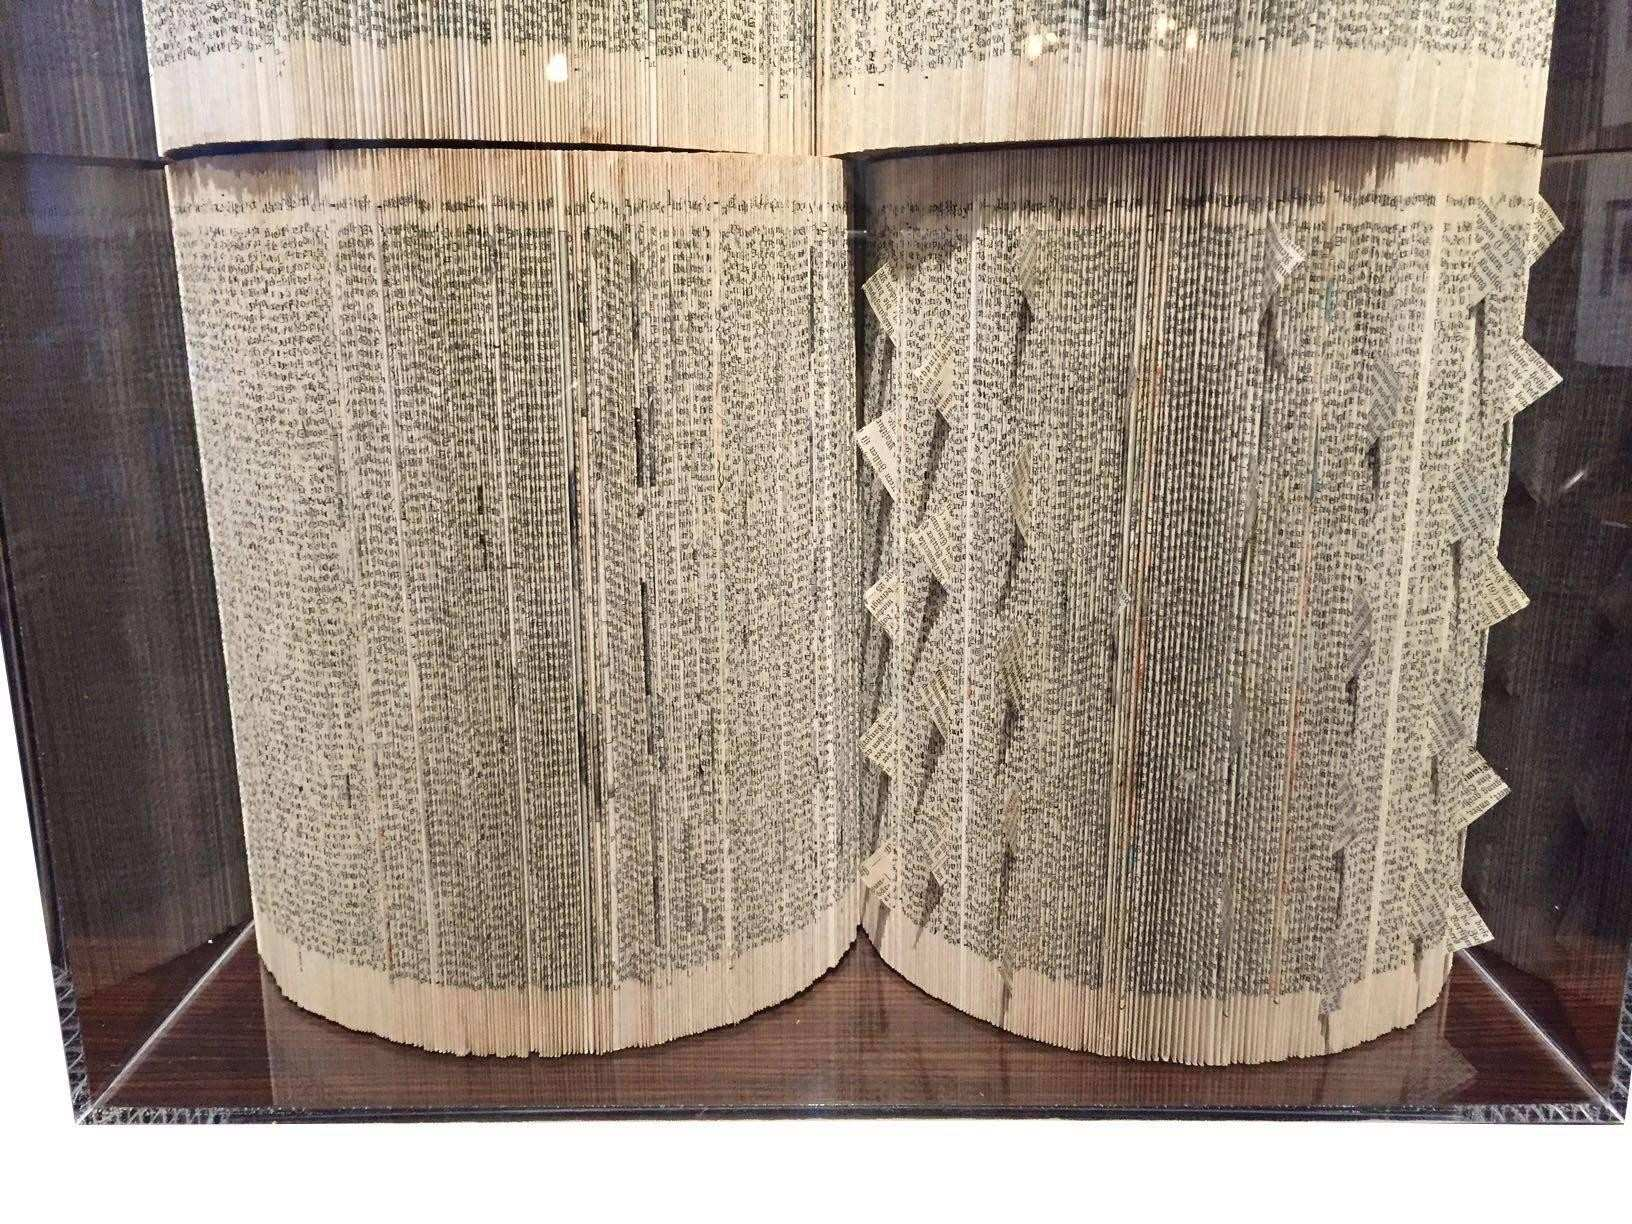 Vintage Book Wall Art Sculpture Italian Contemporary For Sale at